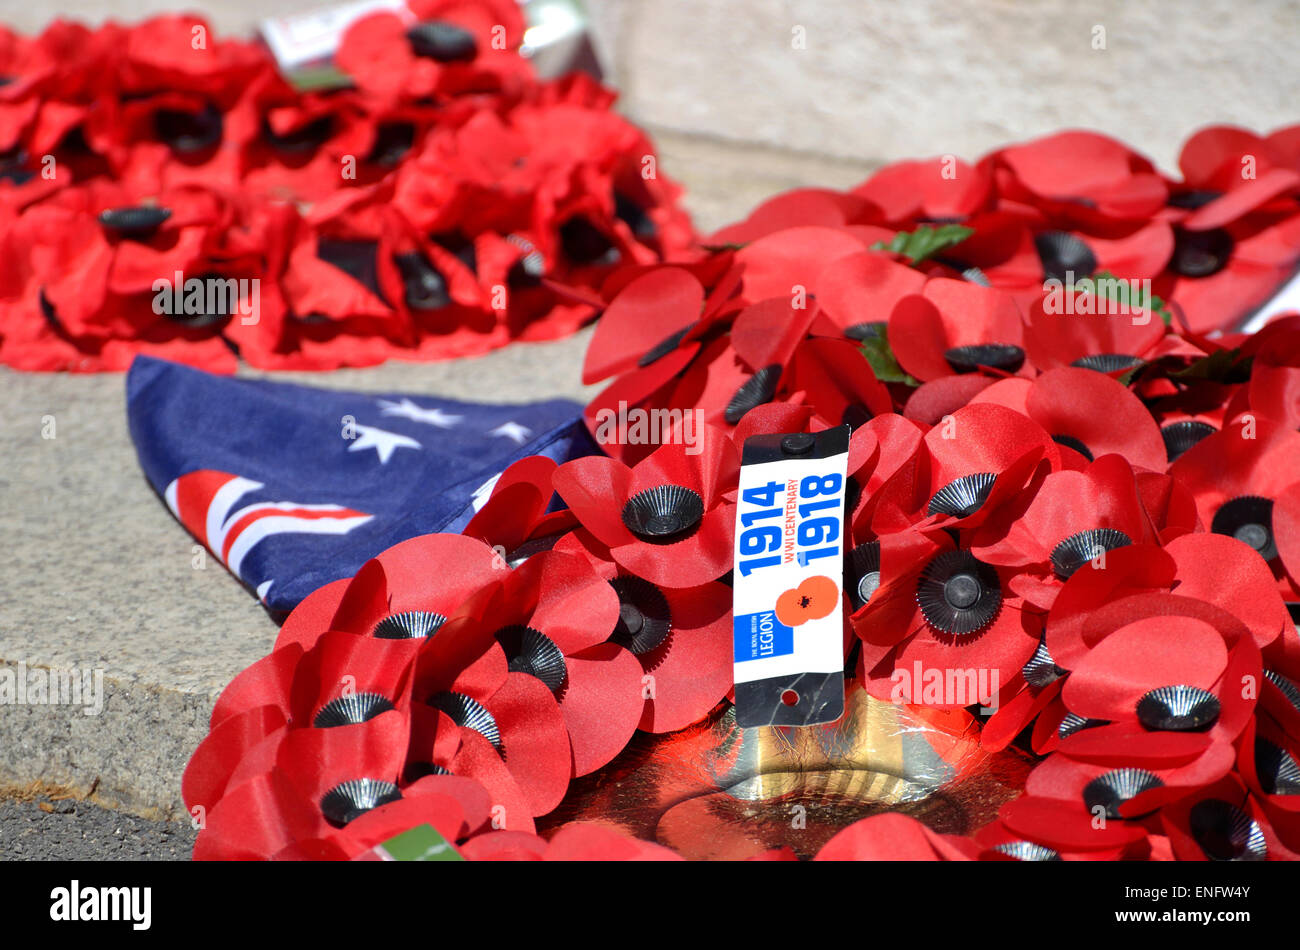 London, England, UK. Poppy wreaths laid at the Cenotaph in Whitehall after 100th anniversary Anzac Day commemorations, - Stock Image